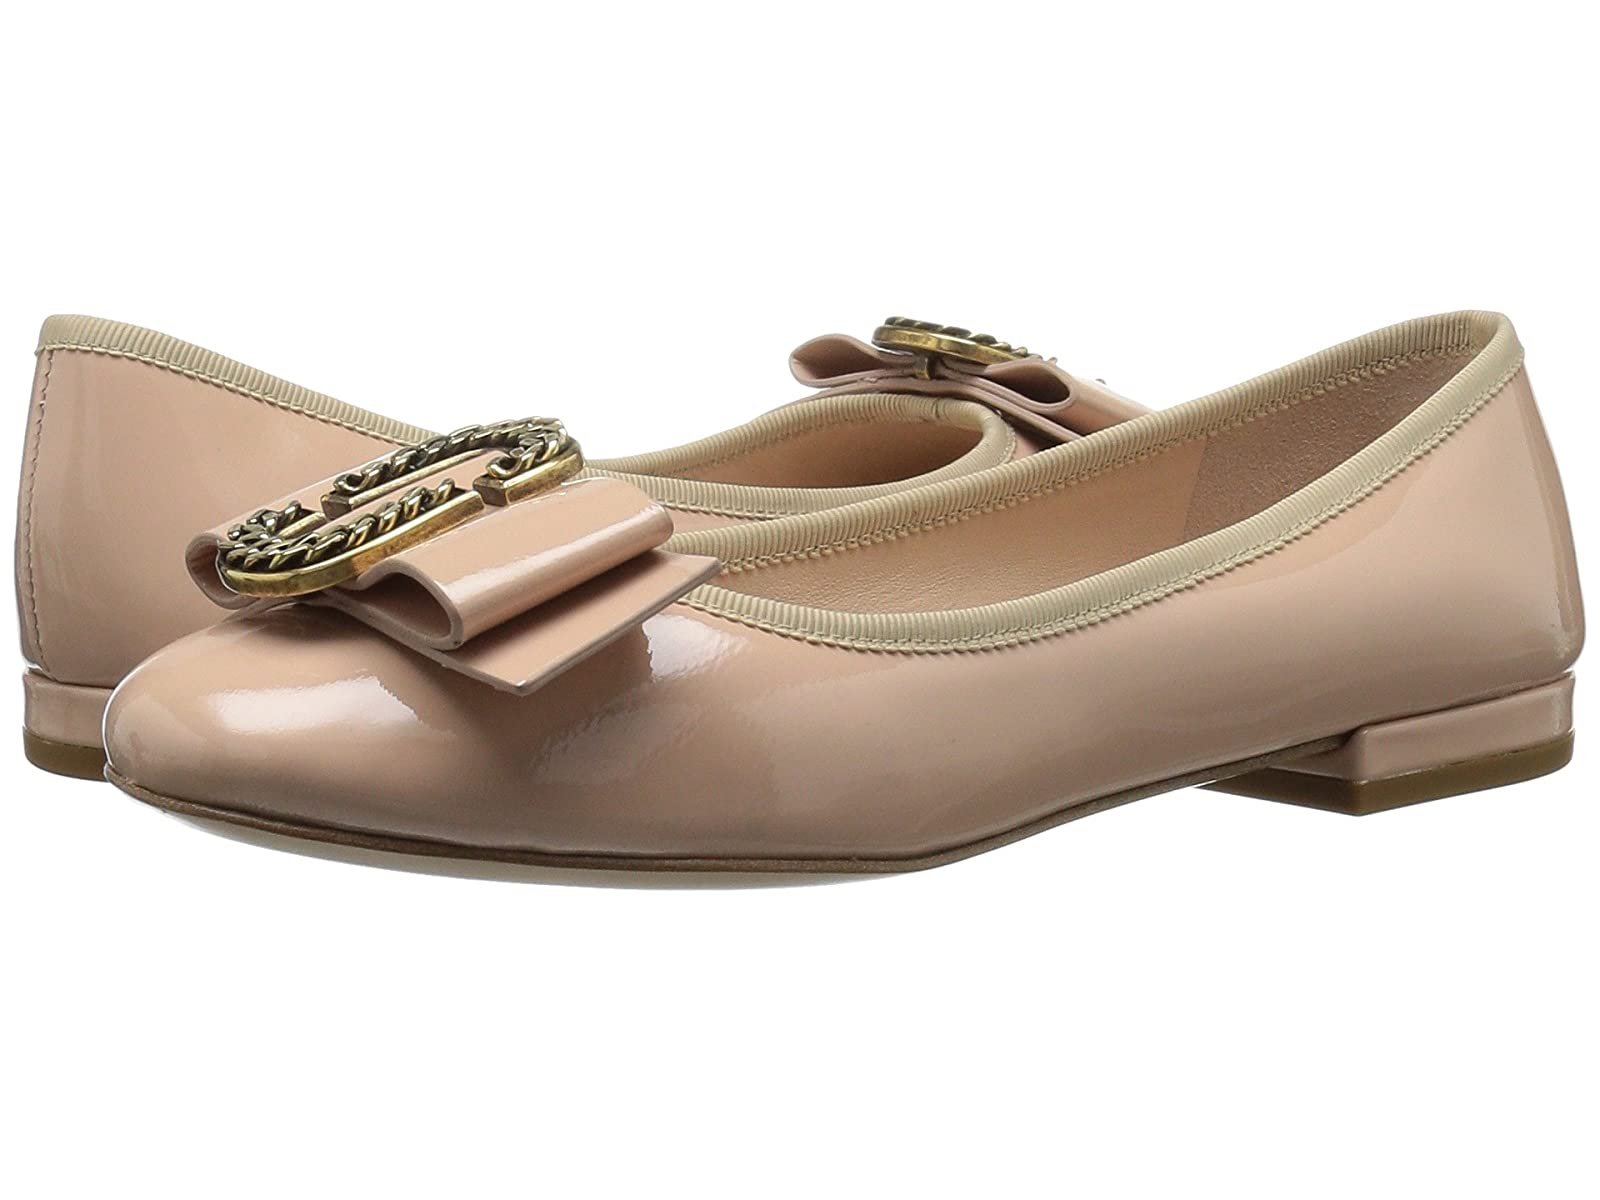 Marc Jacobs Interlock Round Toe BallerinaCheap and distinctive eye-catching shoes